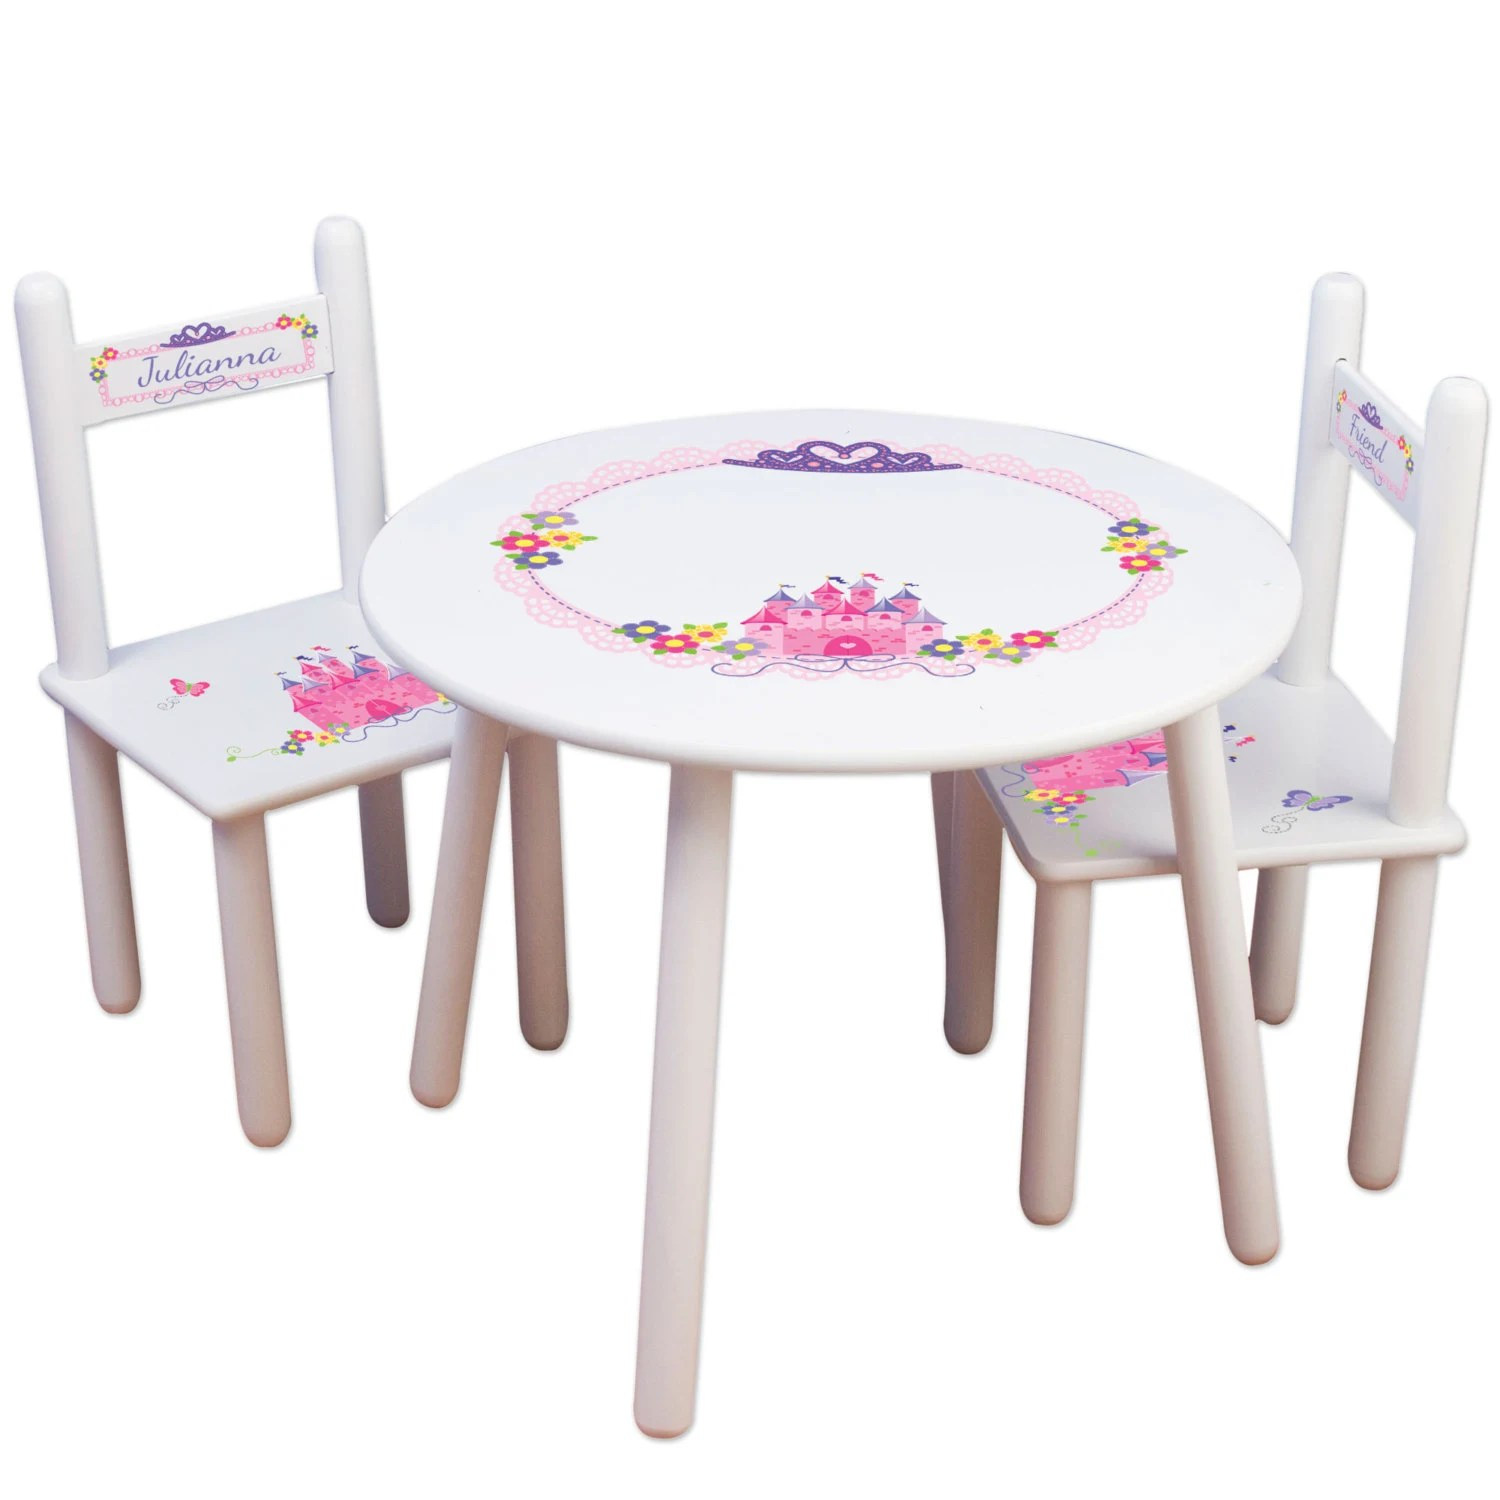 table and chairs for kids chair cover rentals essex girls princess set frozen furniture